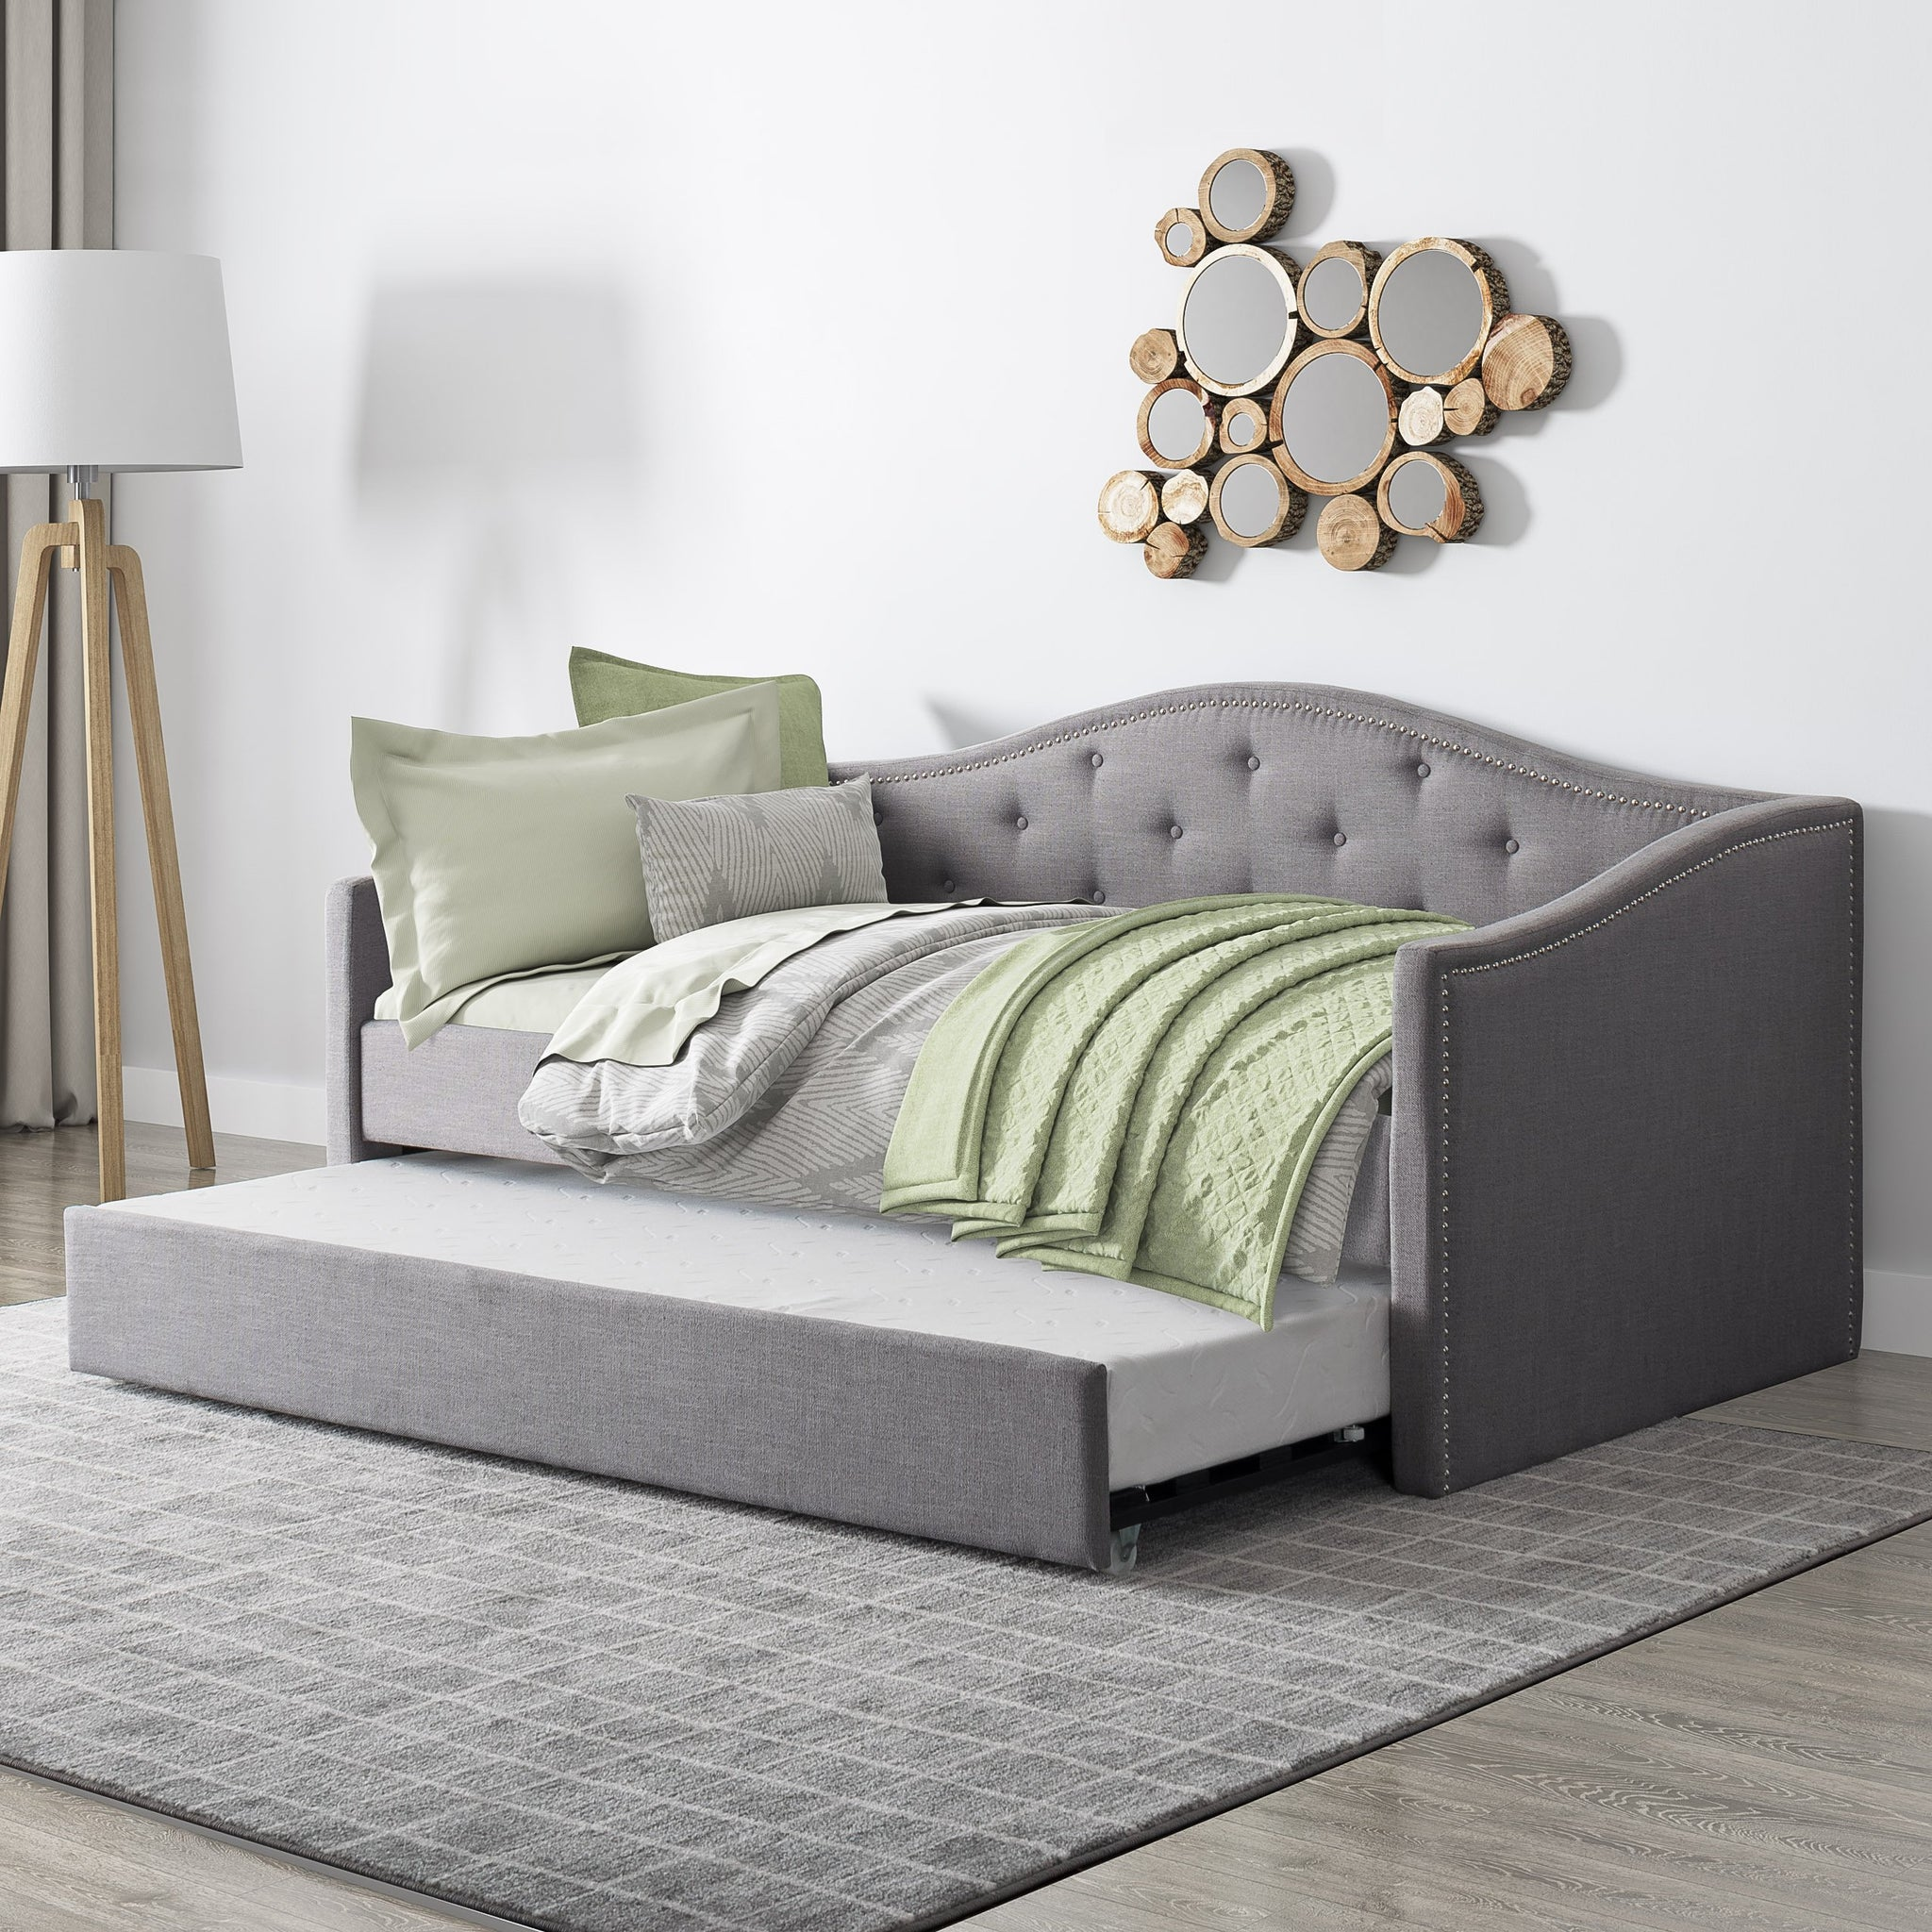 Fairfield Tufted Fabric Day Bed With Trundle Twin Single Corliving Furniture Us